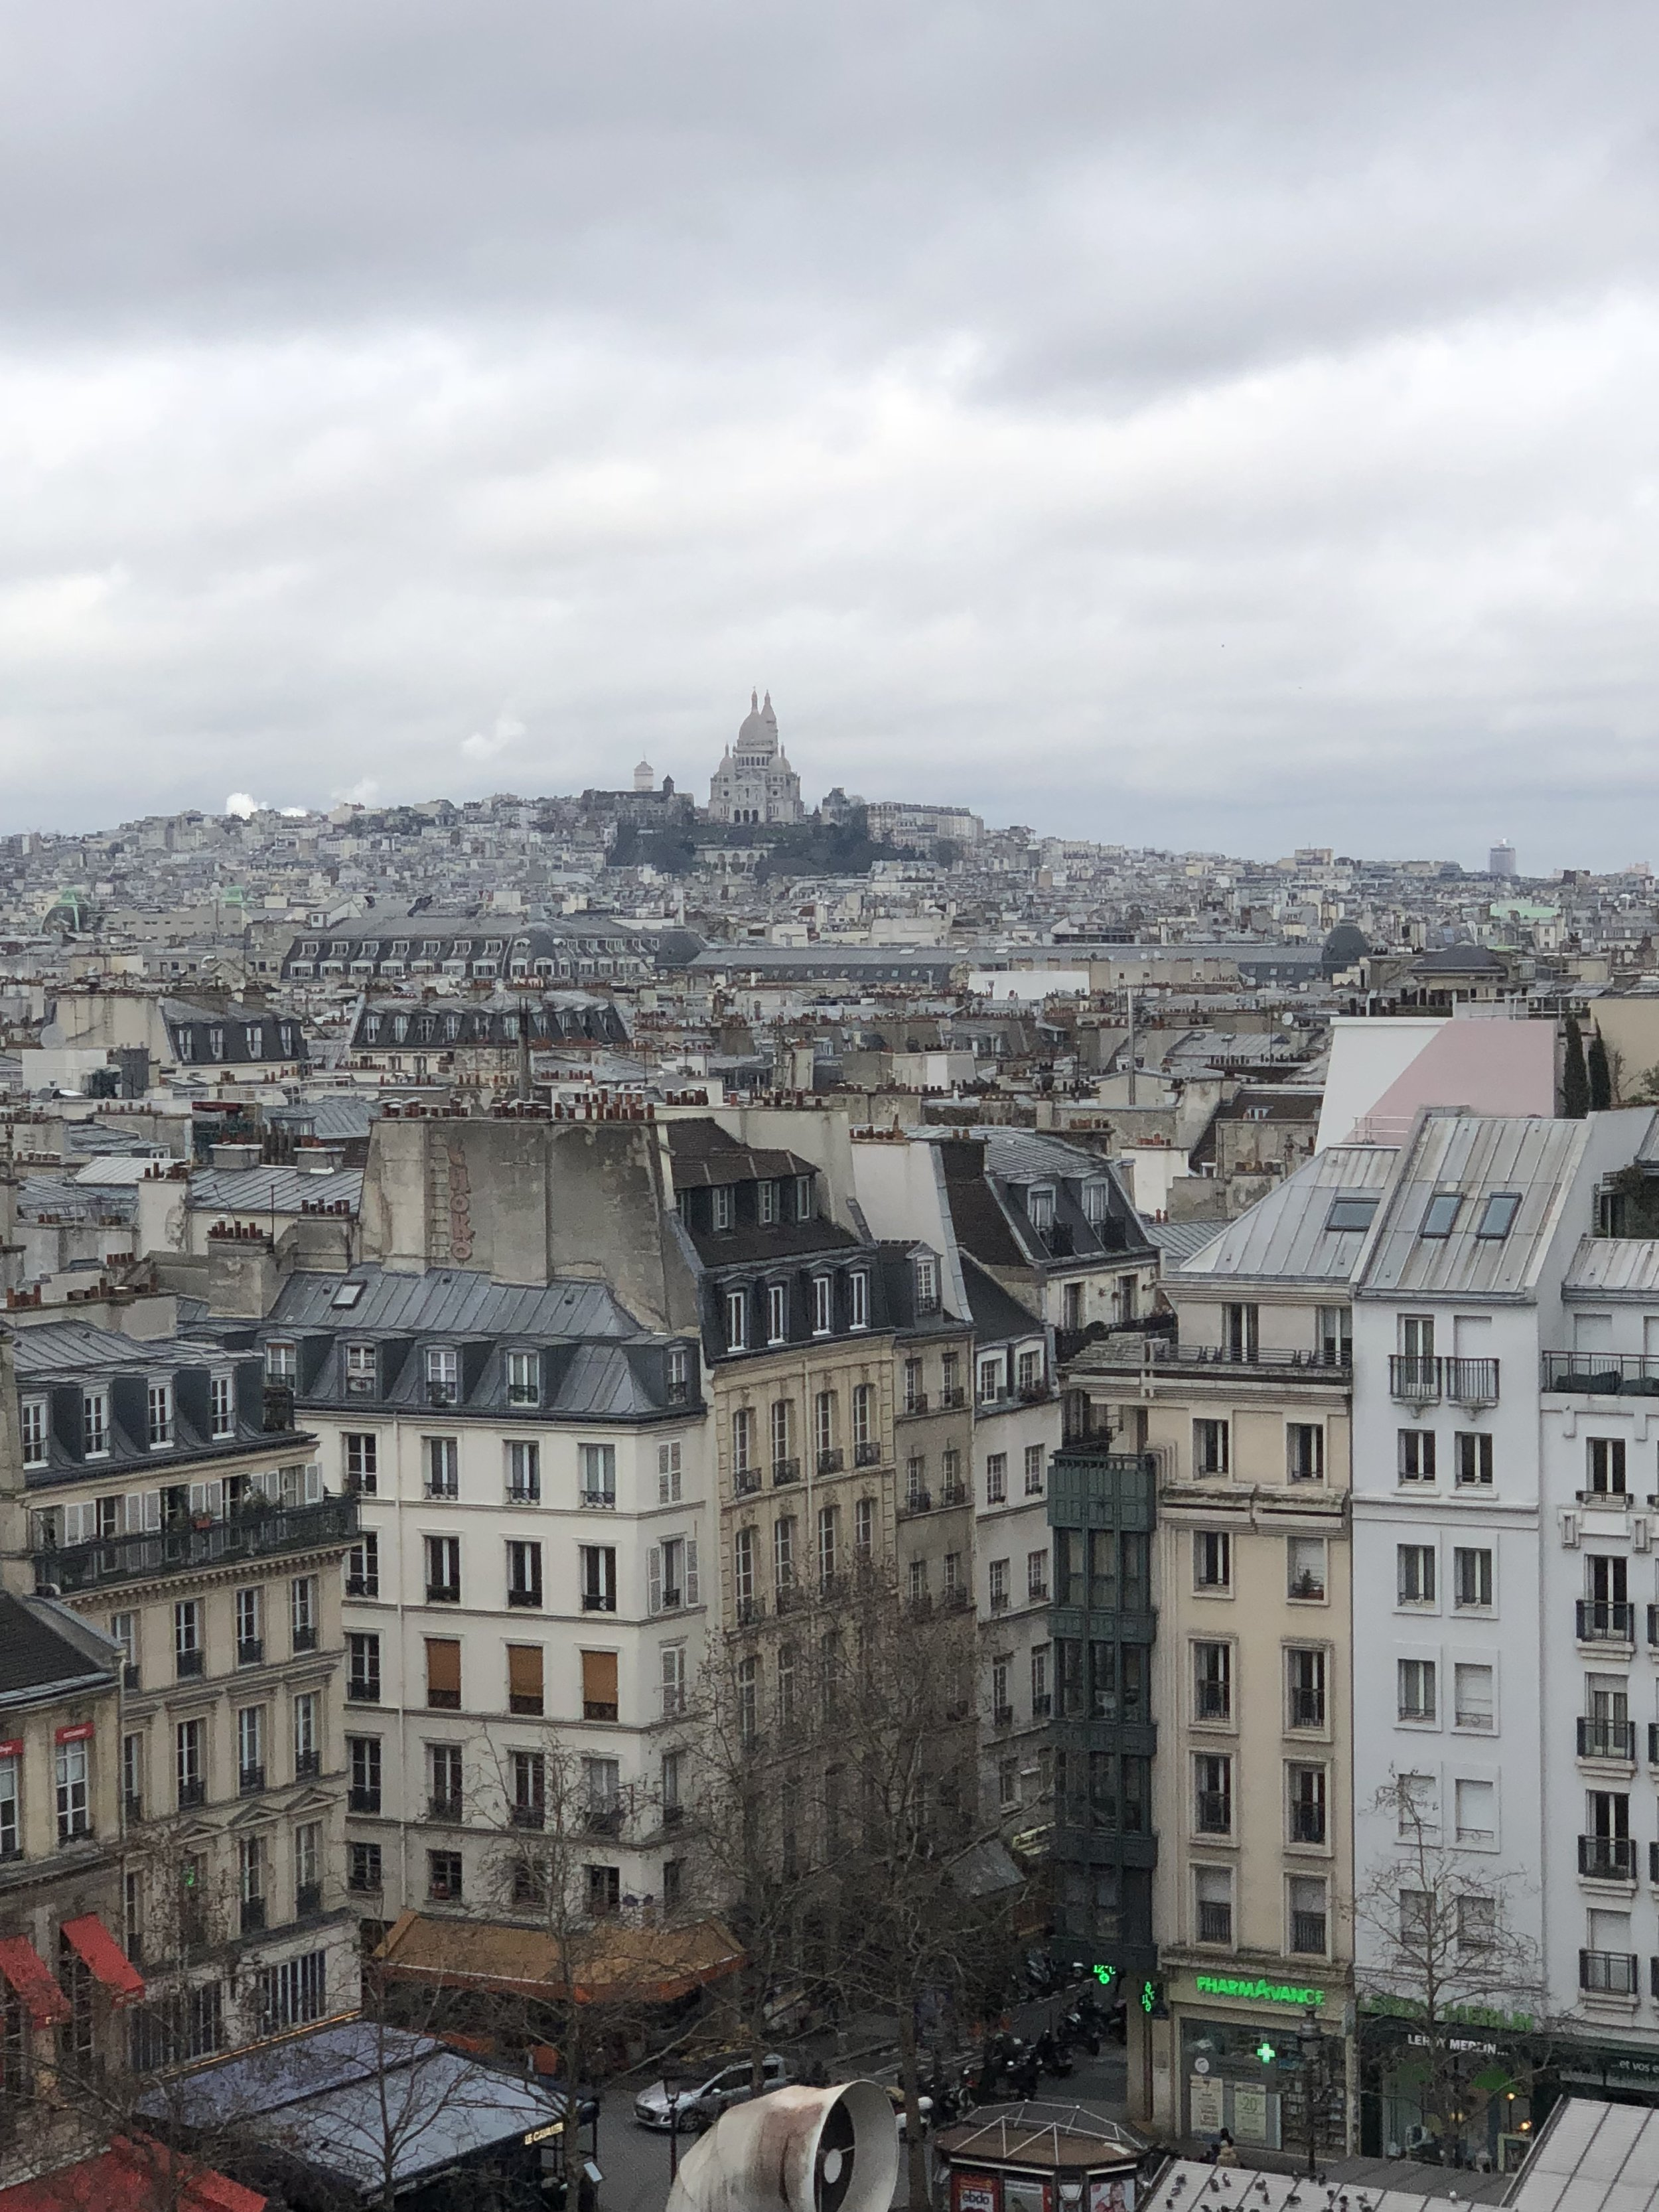 Montmartre seen from the Pompidou Center